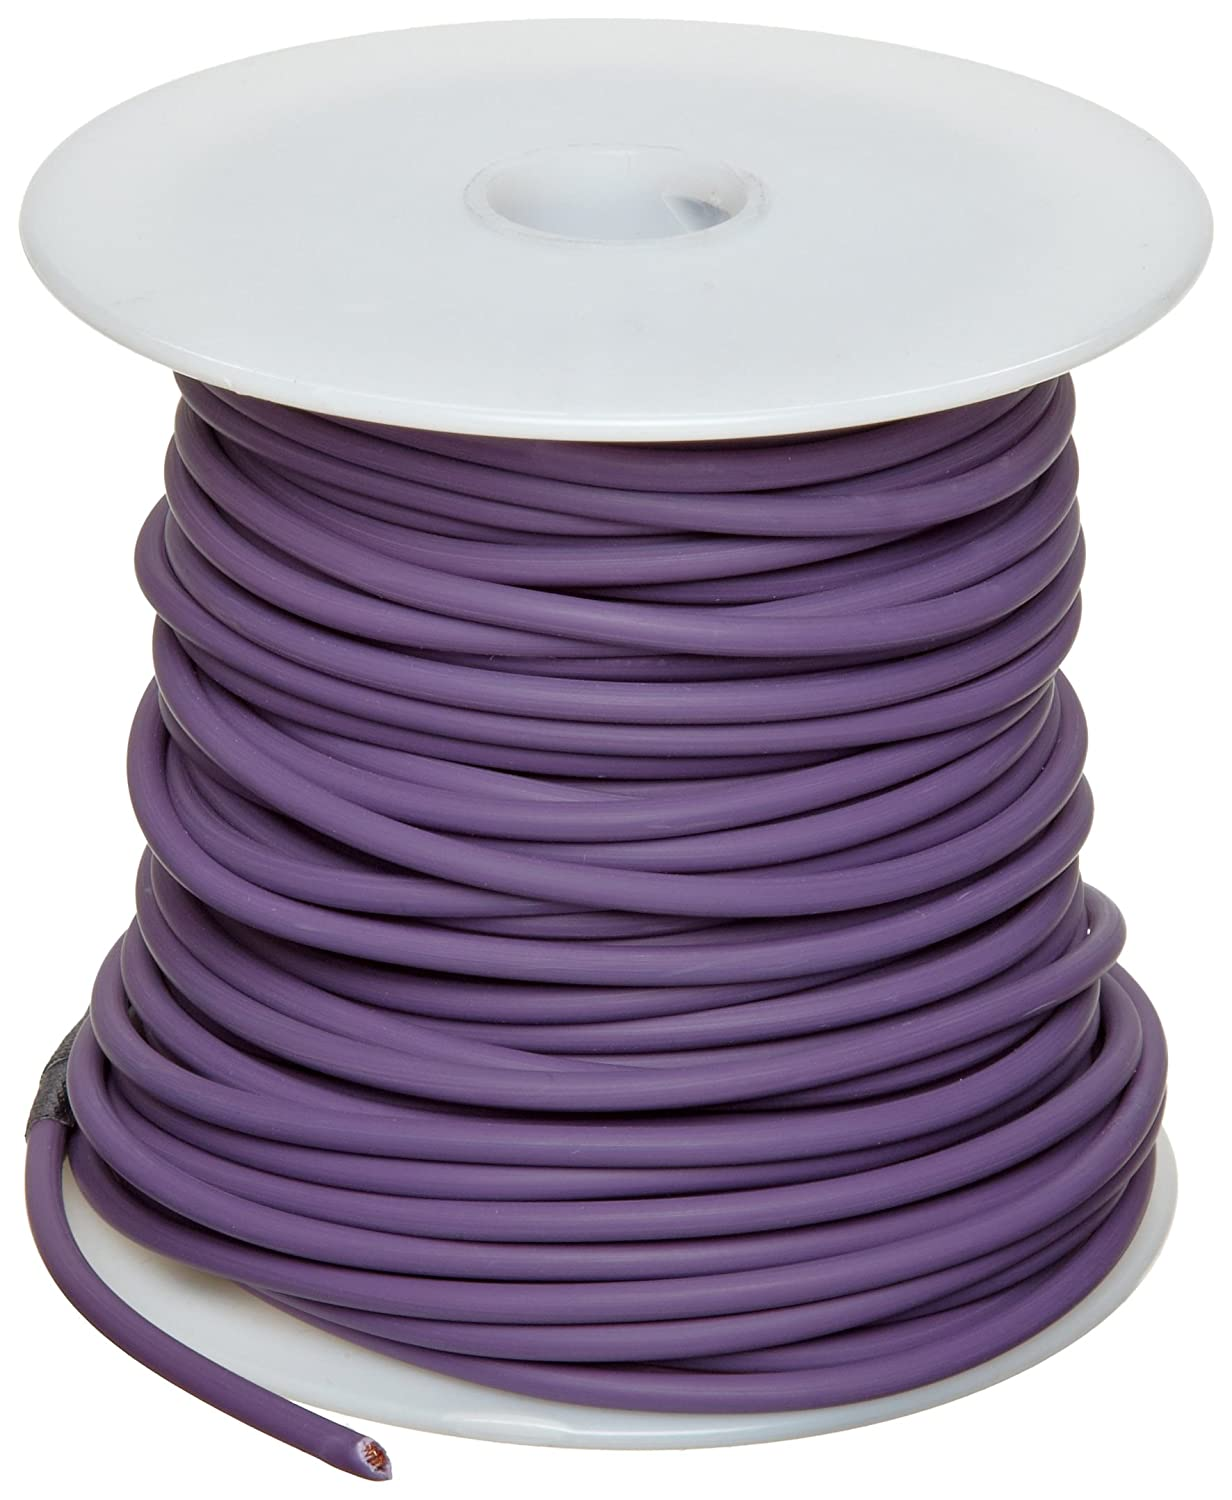 GXL Automotive Copper Wire Violet 0.0808 Diameter 100 Length Pack of 1 12 AWG